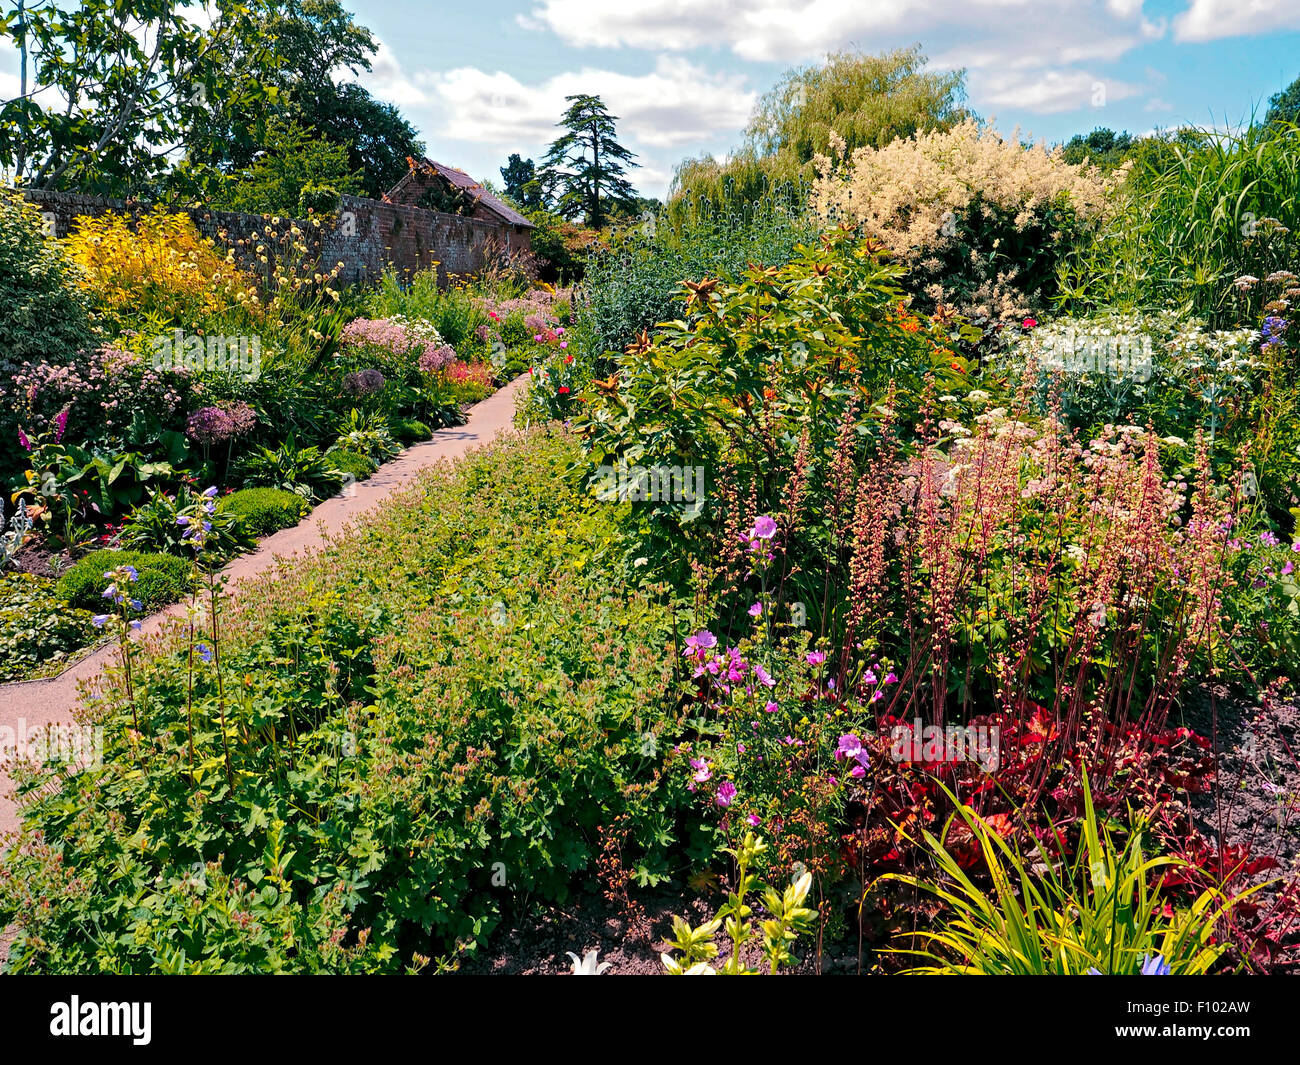 Croft gardens and parklands Herefordshire - Stock Image